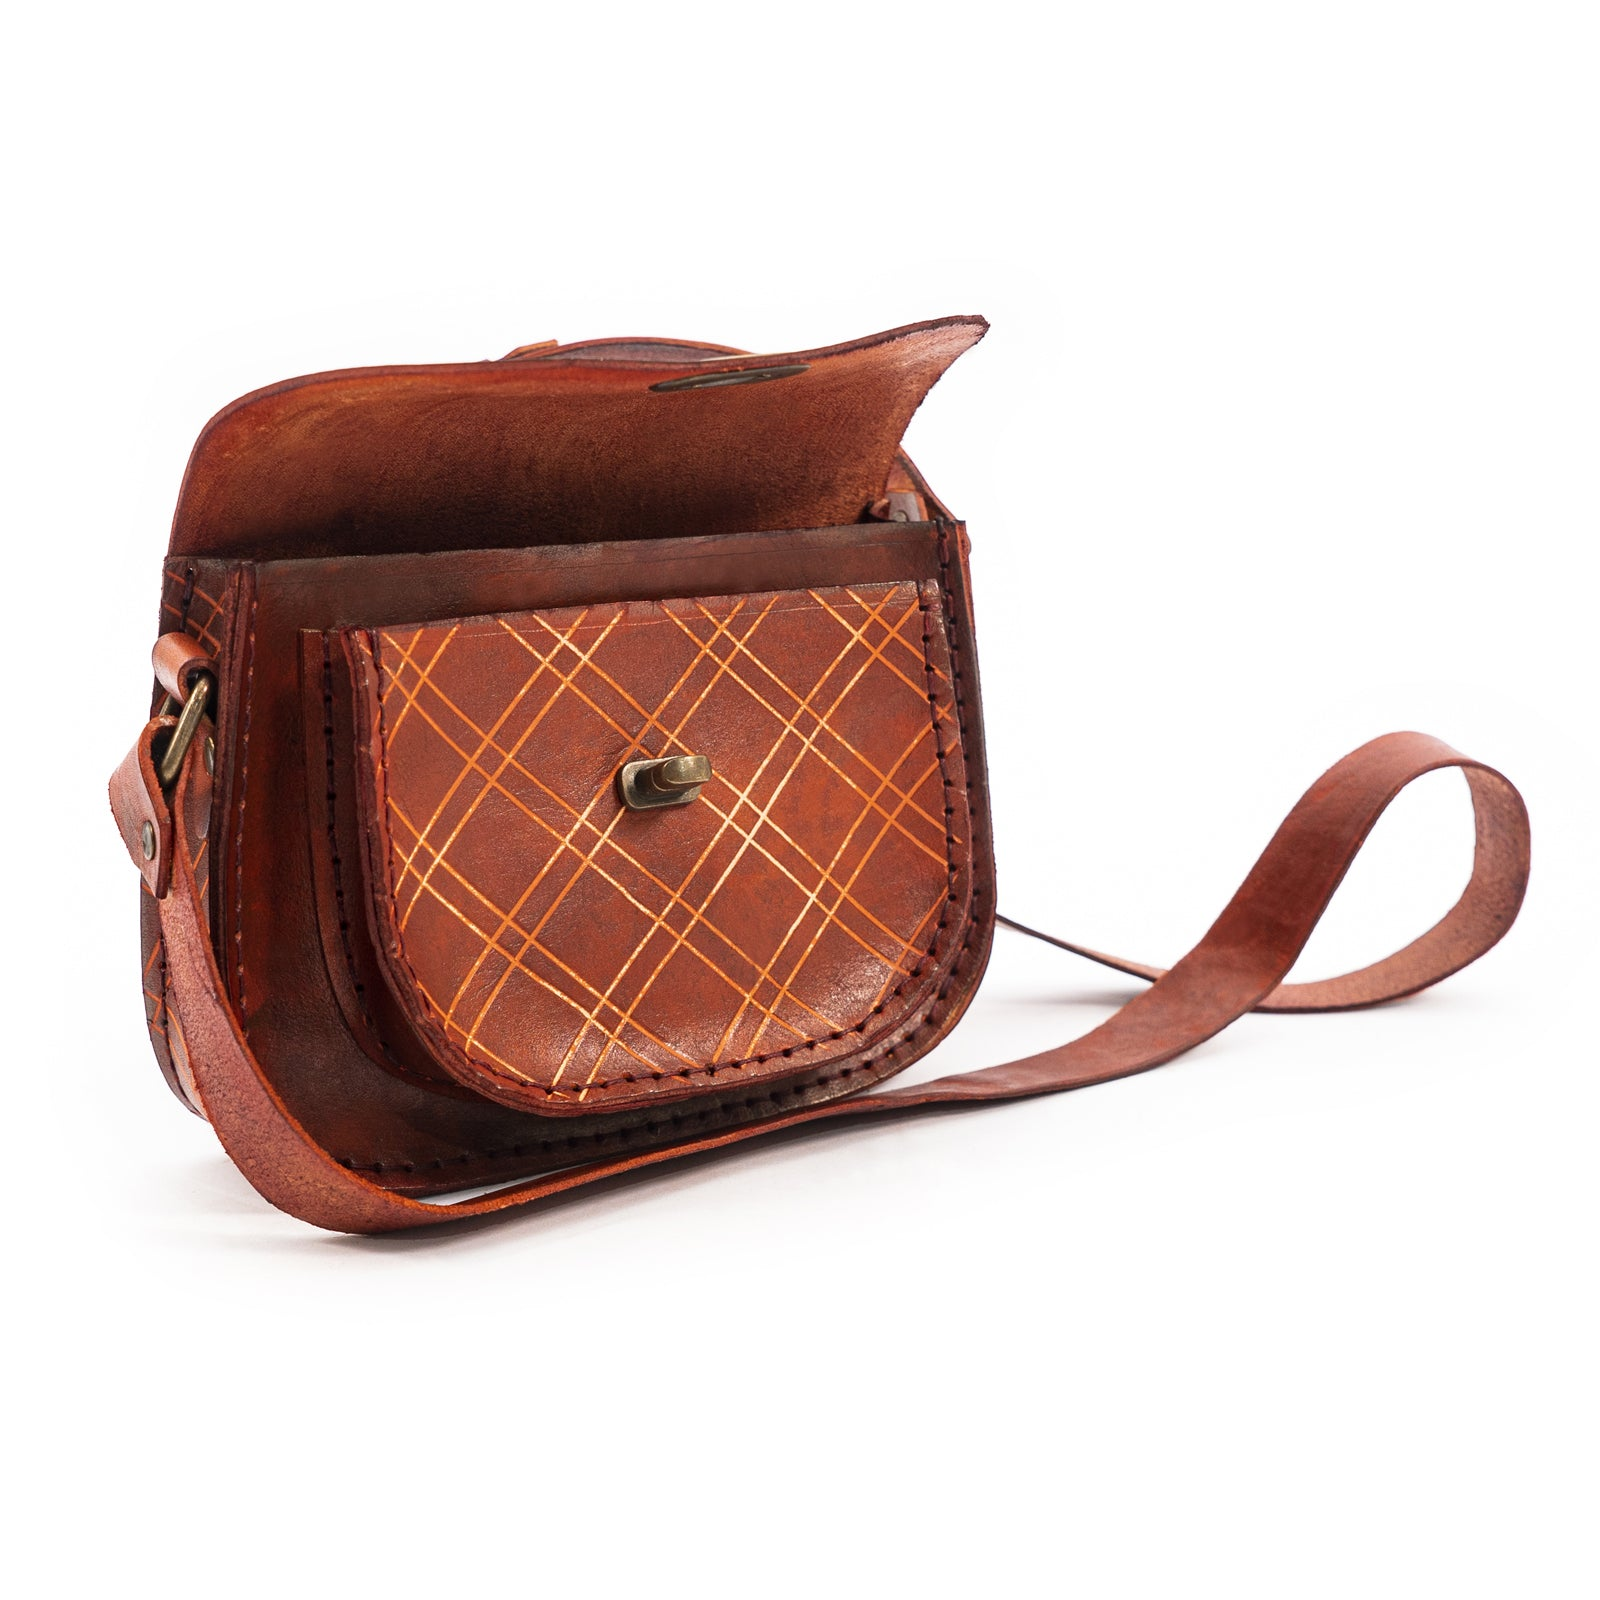 Derifix Neopya Women's Handmade Leather Bag